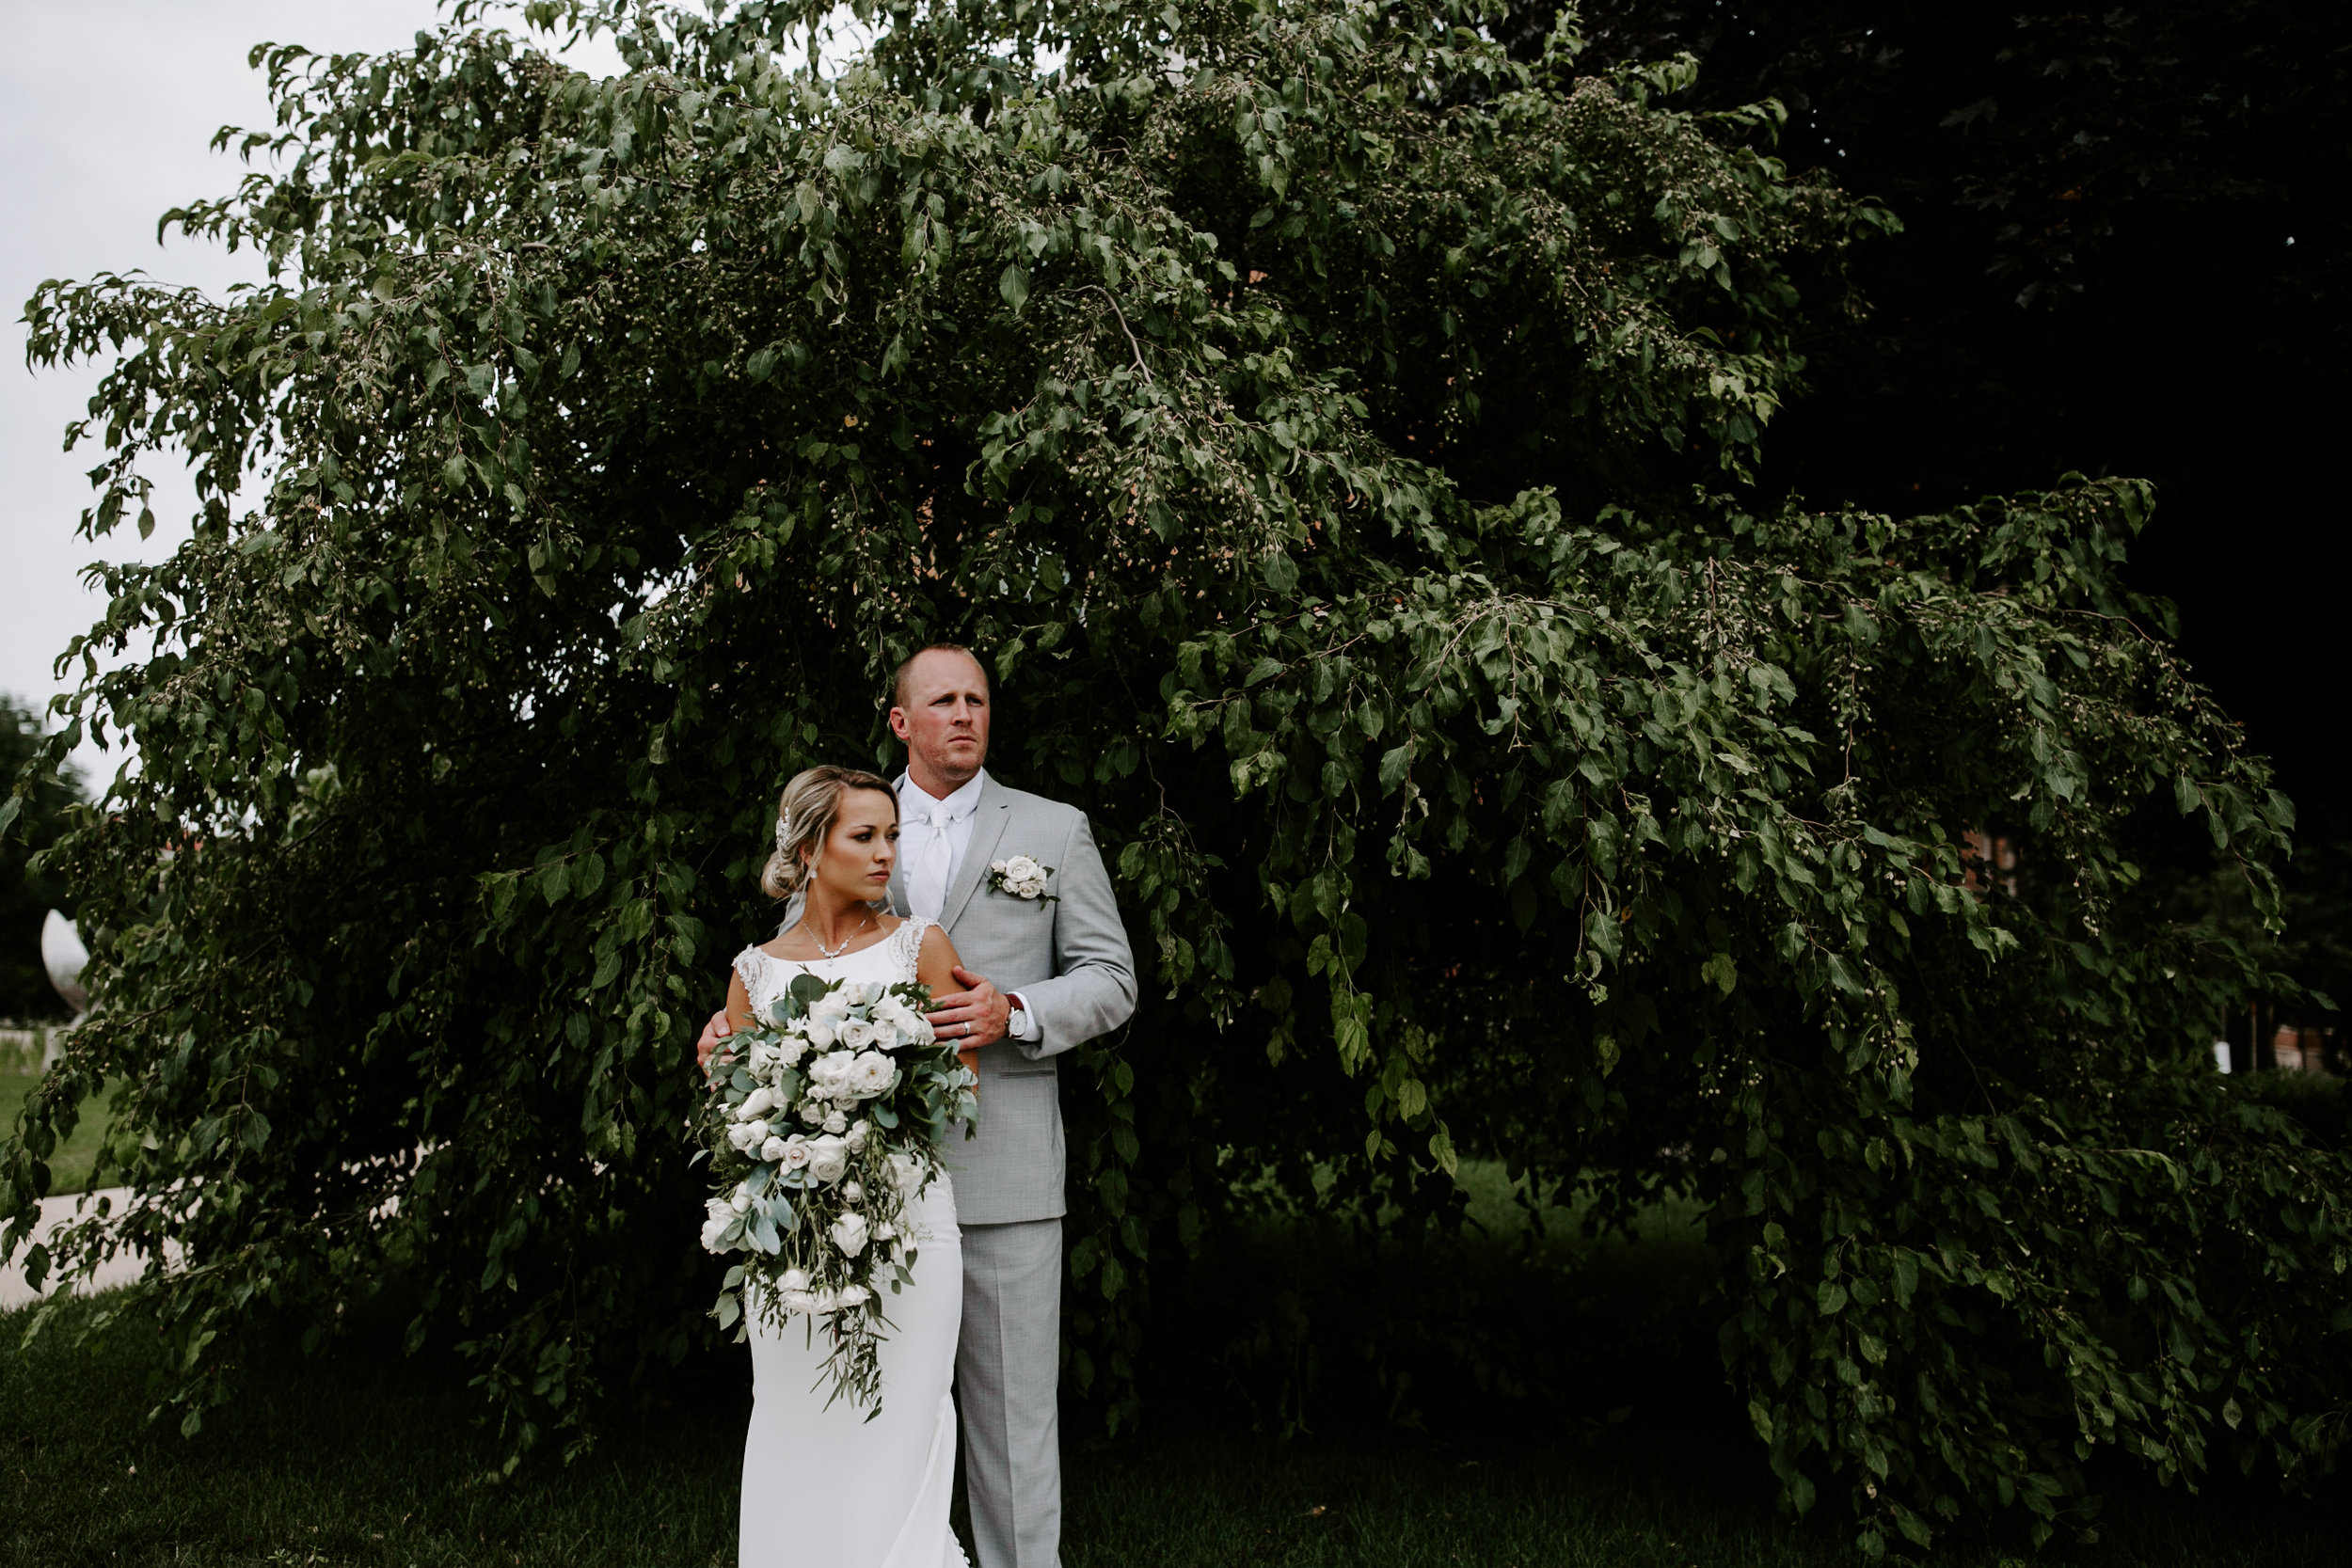 gracetphotography-iowa-wedding-photographer-midwest-weddings-des-moines-44.jpg